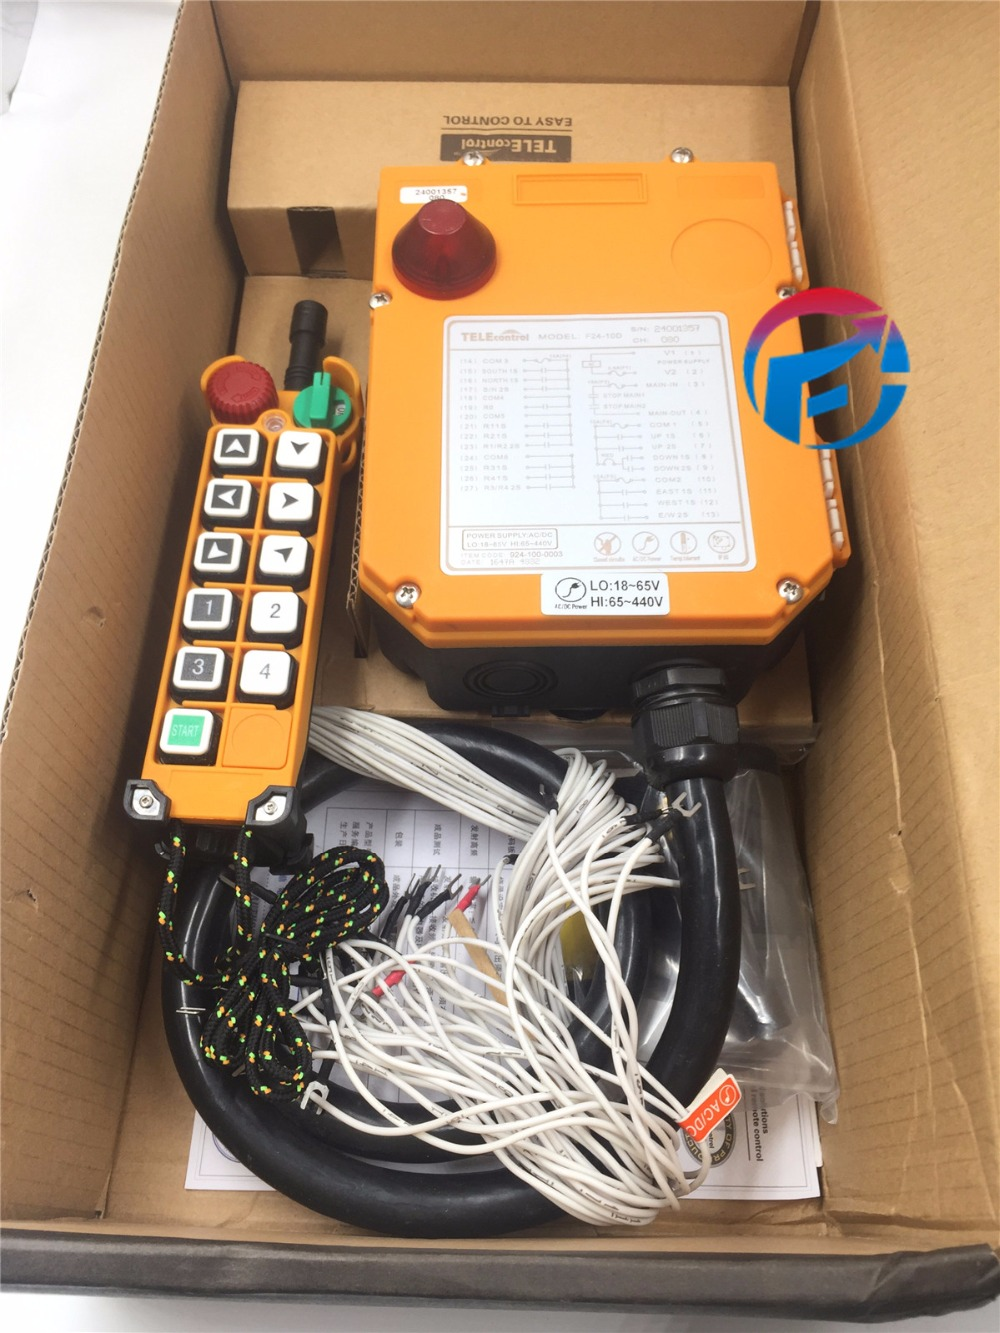 F24-10D 2 speed Wireless Remote Control Electric Chain Hoist Crane Controller 1 Transmitter + 2 Receiver 18V 30a esc welding plug brushless electric speed control 4v 16v voltage